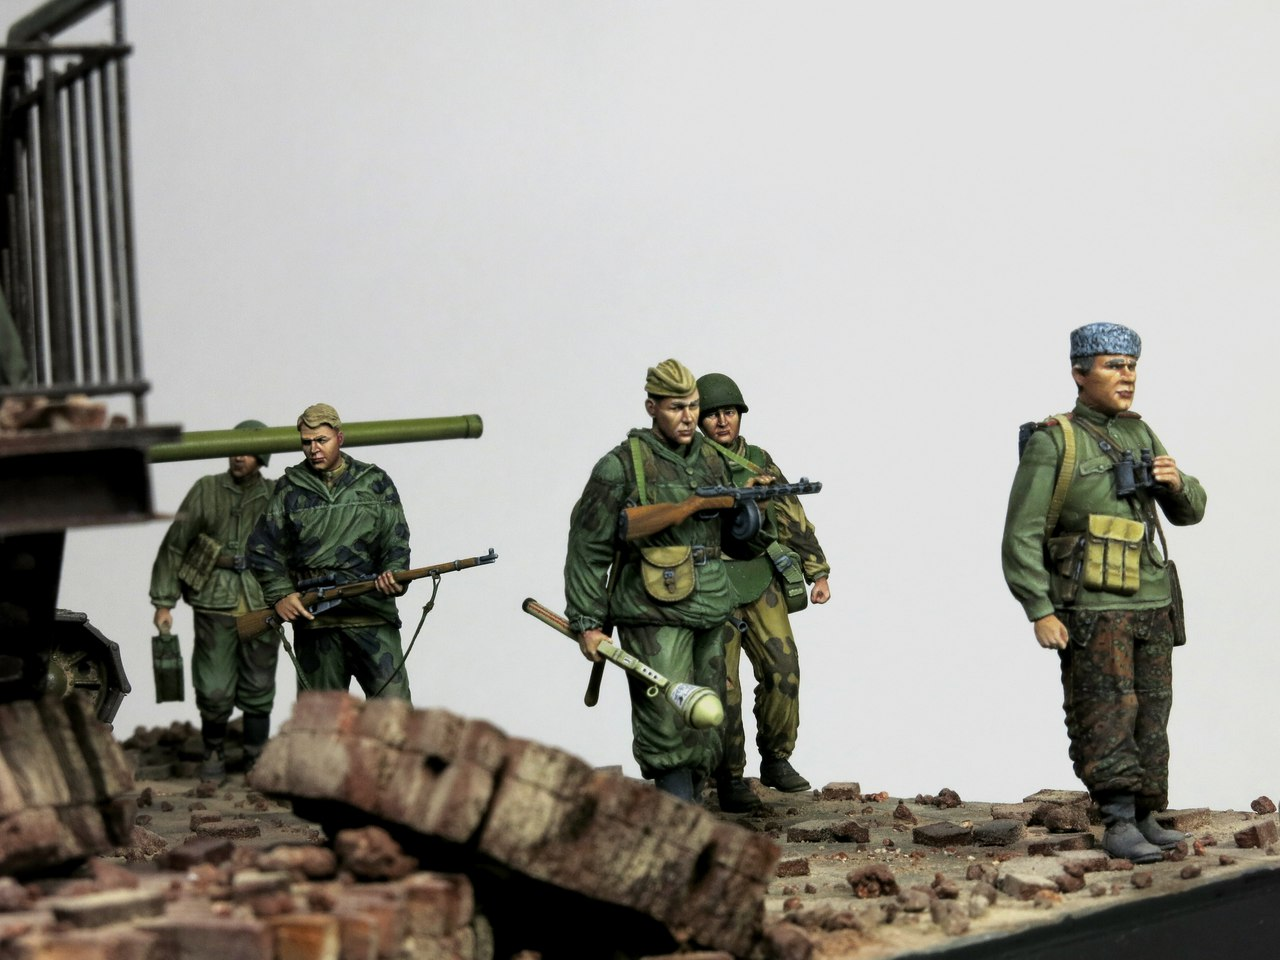 Dioramas and Vignettes: Tragoedia in finem, photo #12